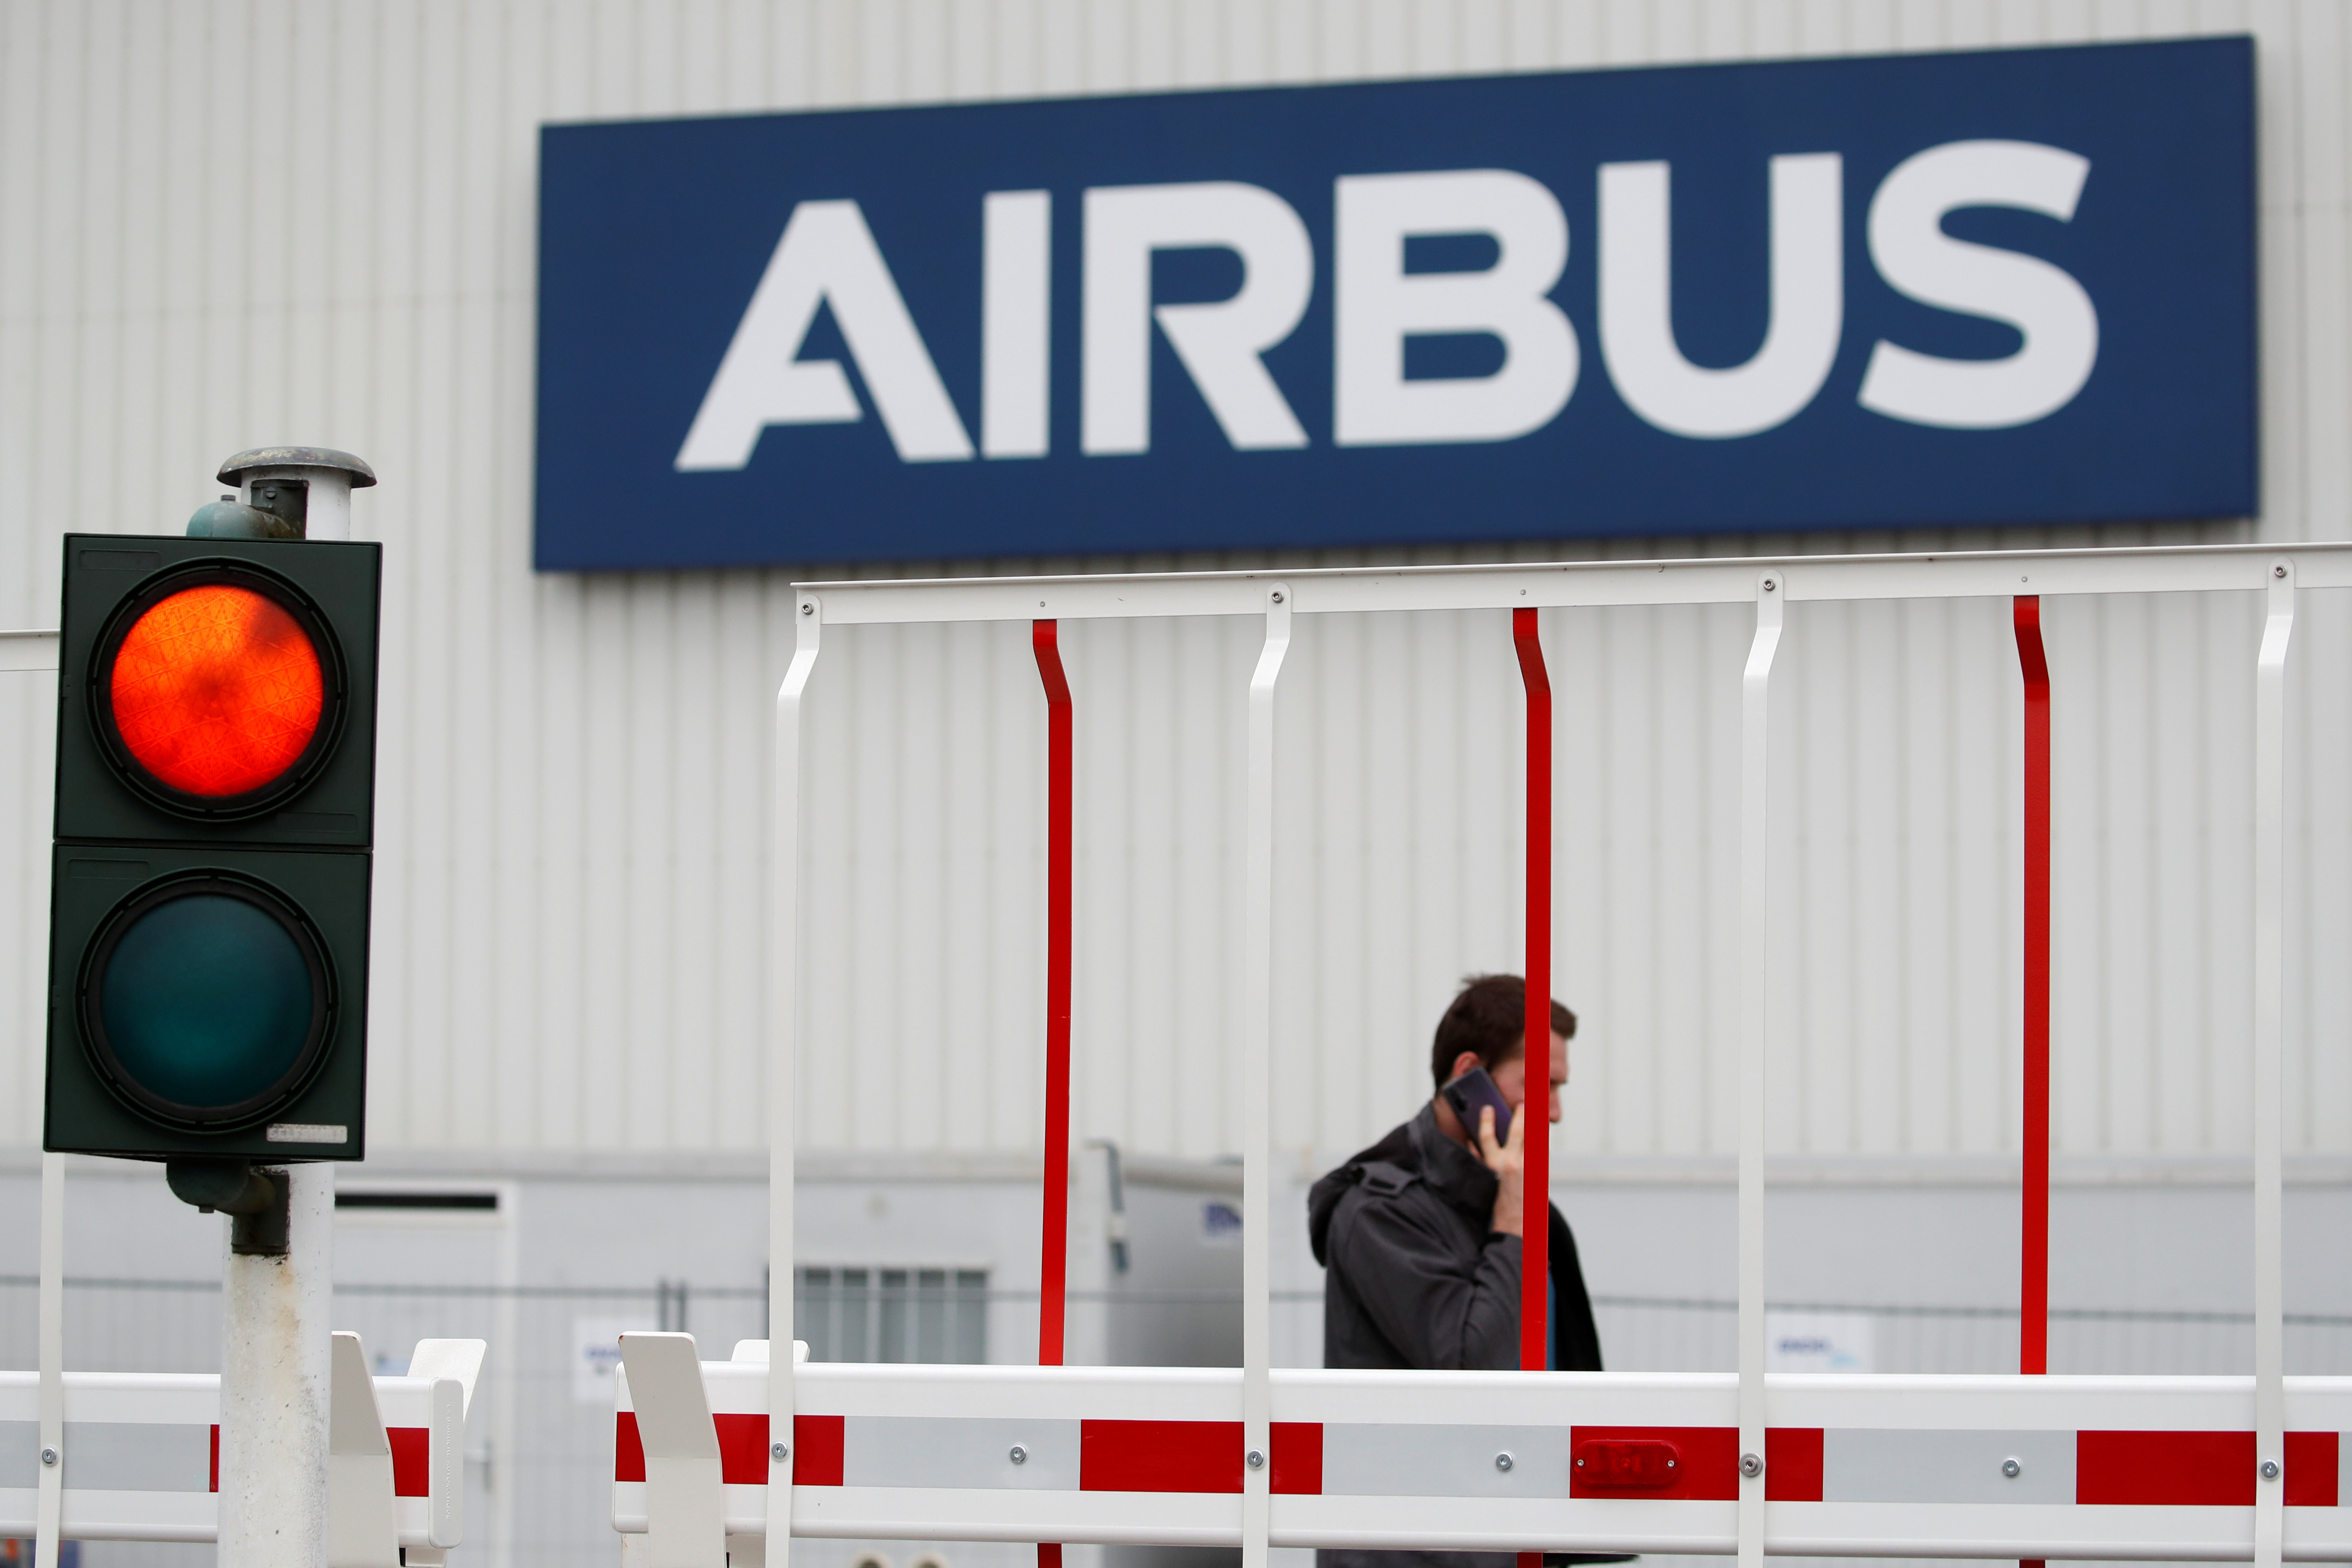 The logo of Airbus is pictured at the entrance of the Airbus facility in Bouguenais, near Nantes, France, July 2, 2020. REUTERS/Stephane Mahe